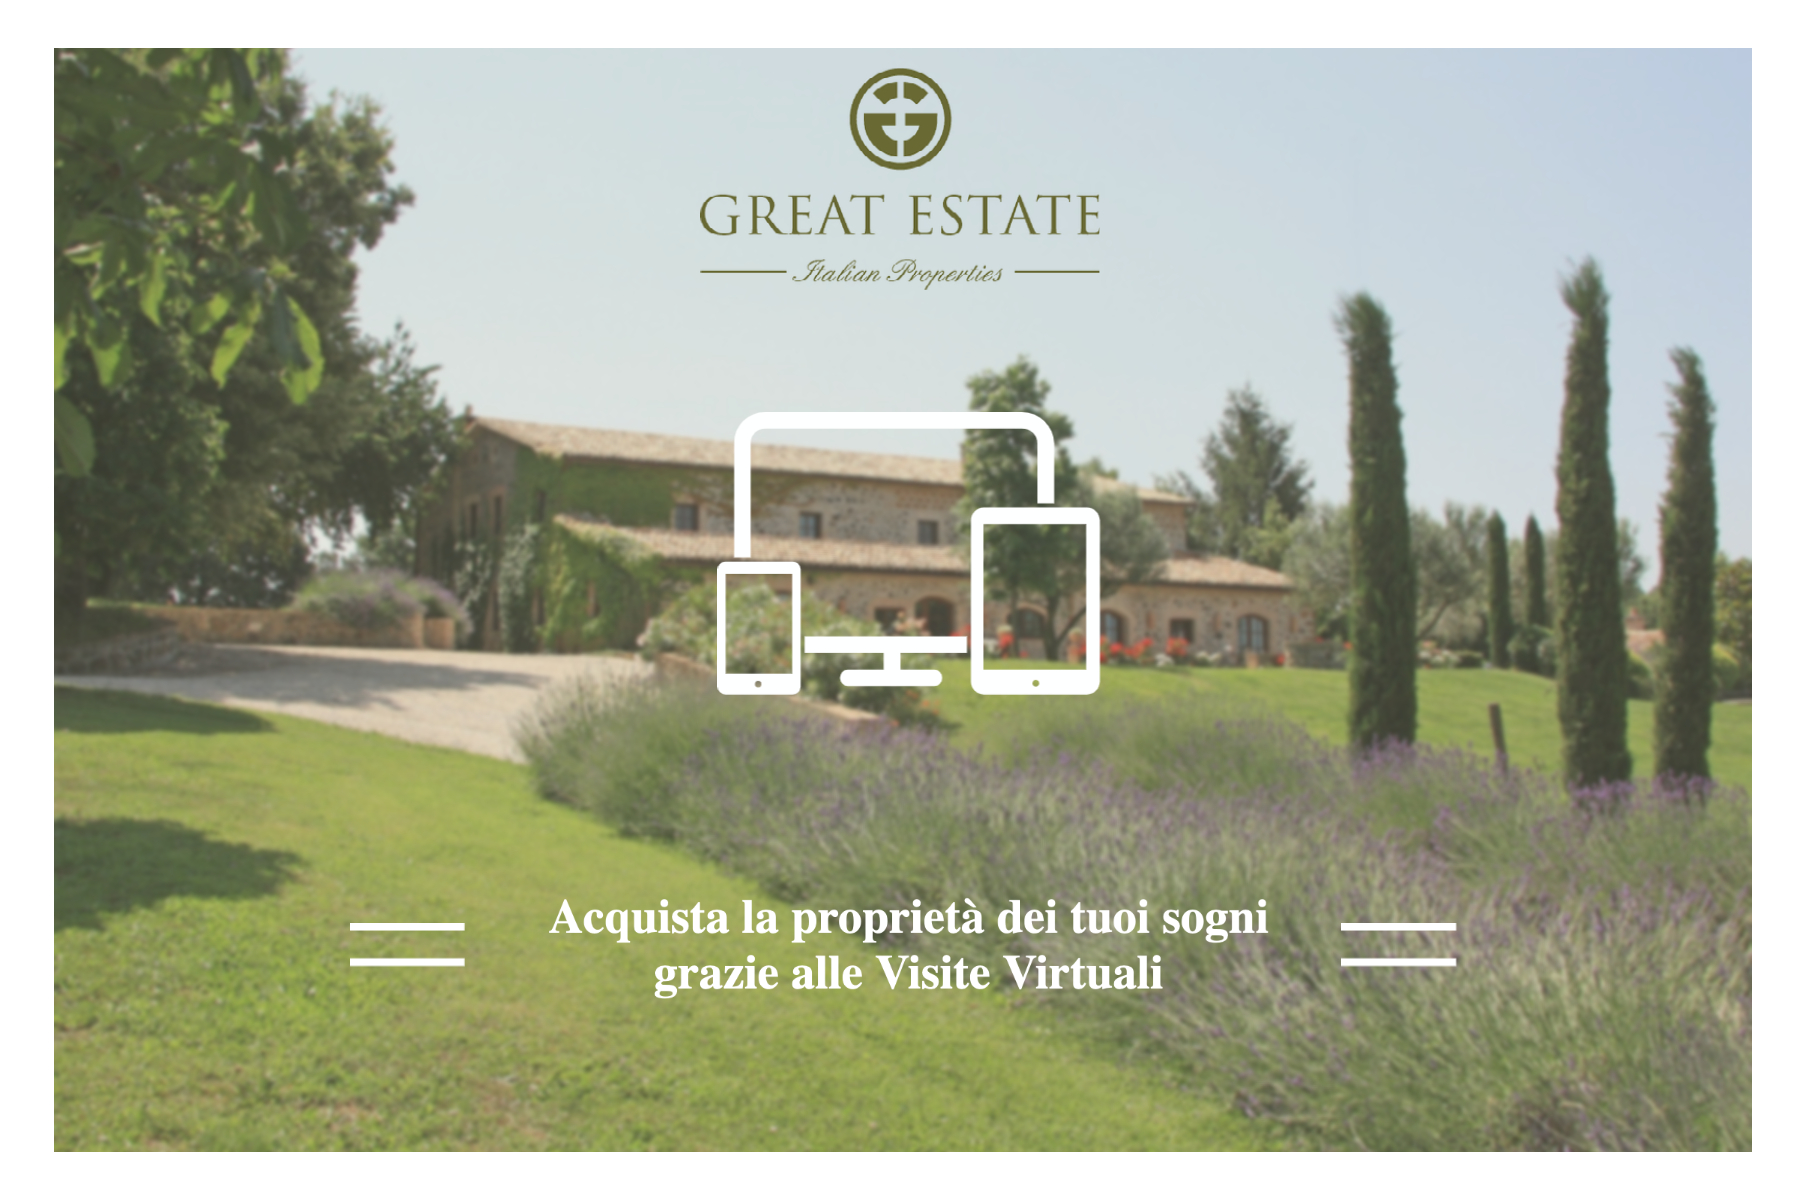 Buy the property of your dreams thanks to GE's innovative project: Virtual Tours